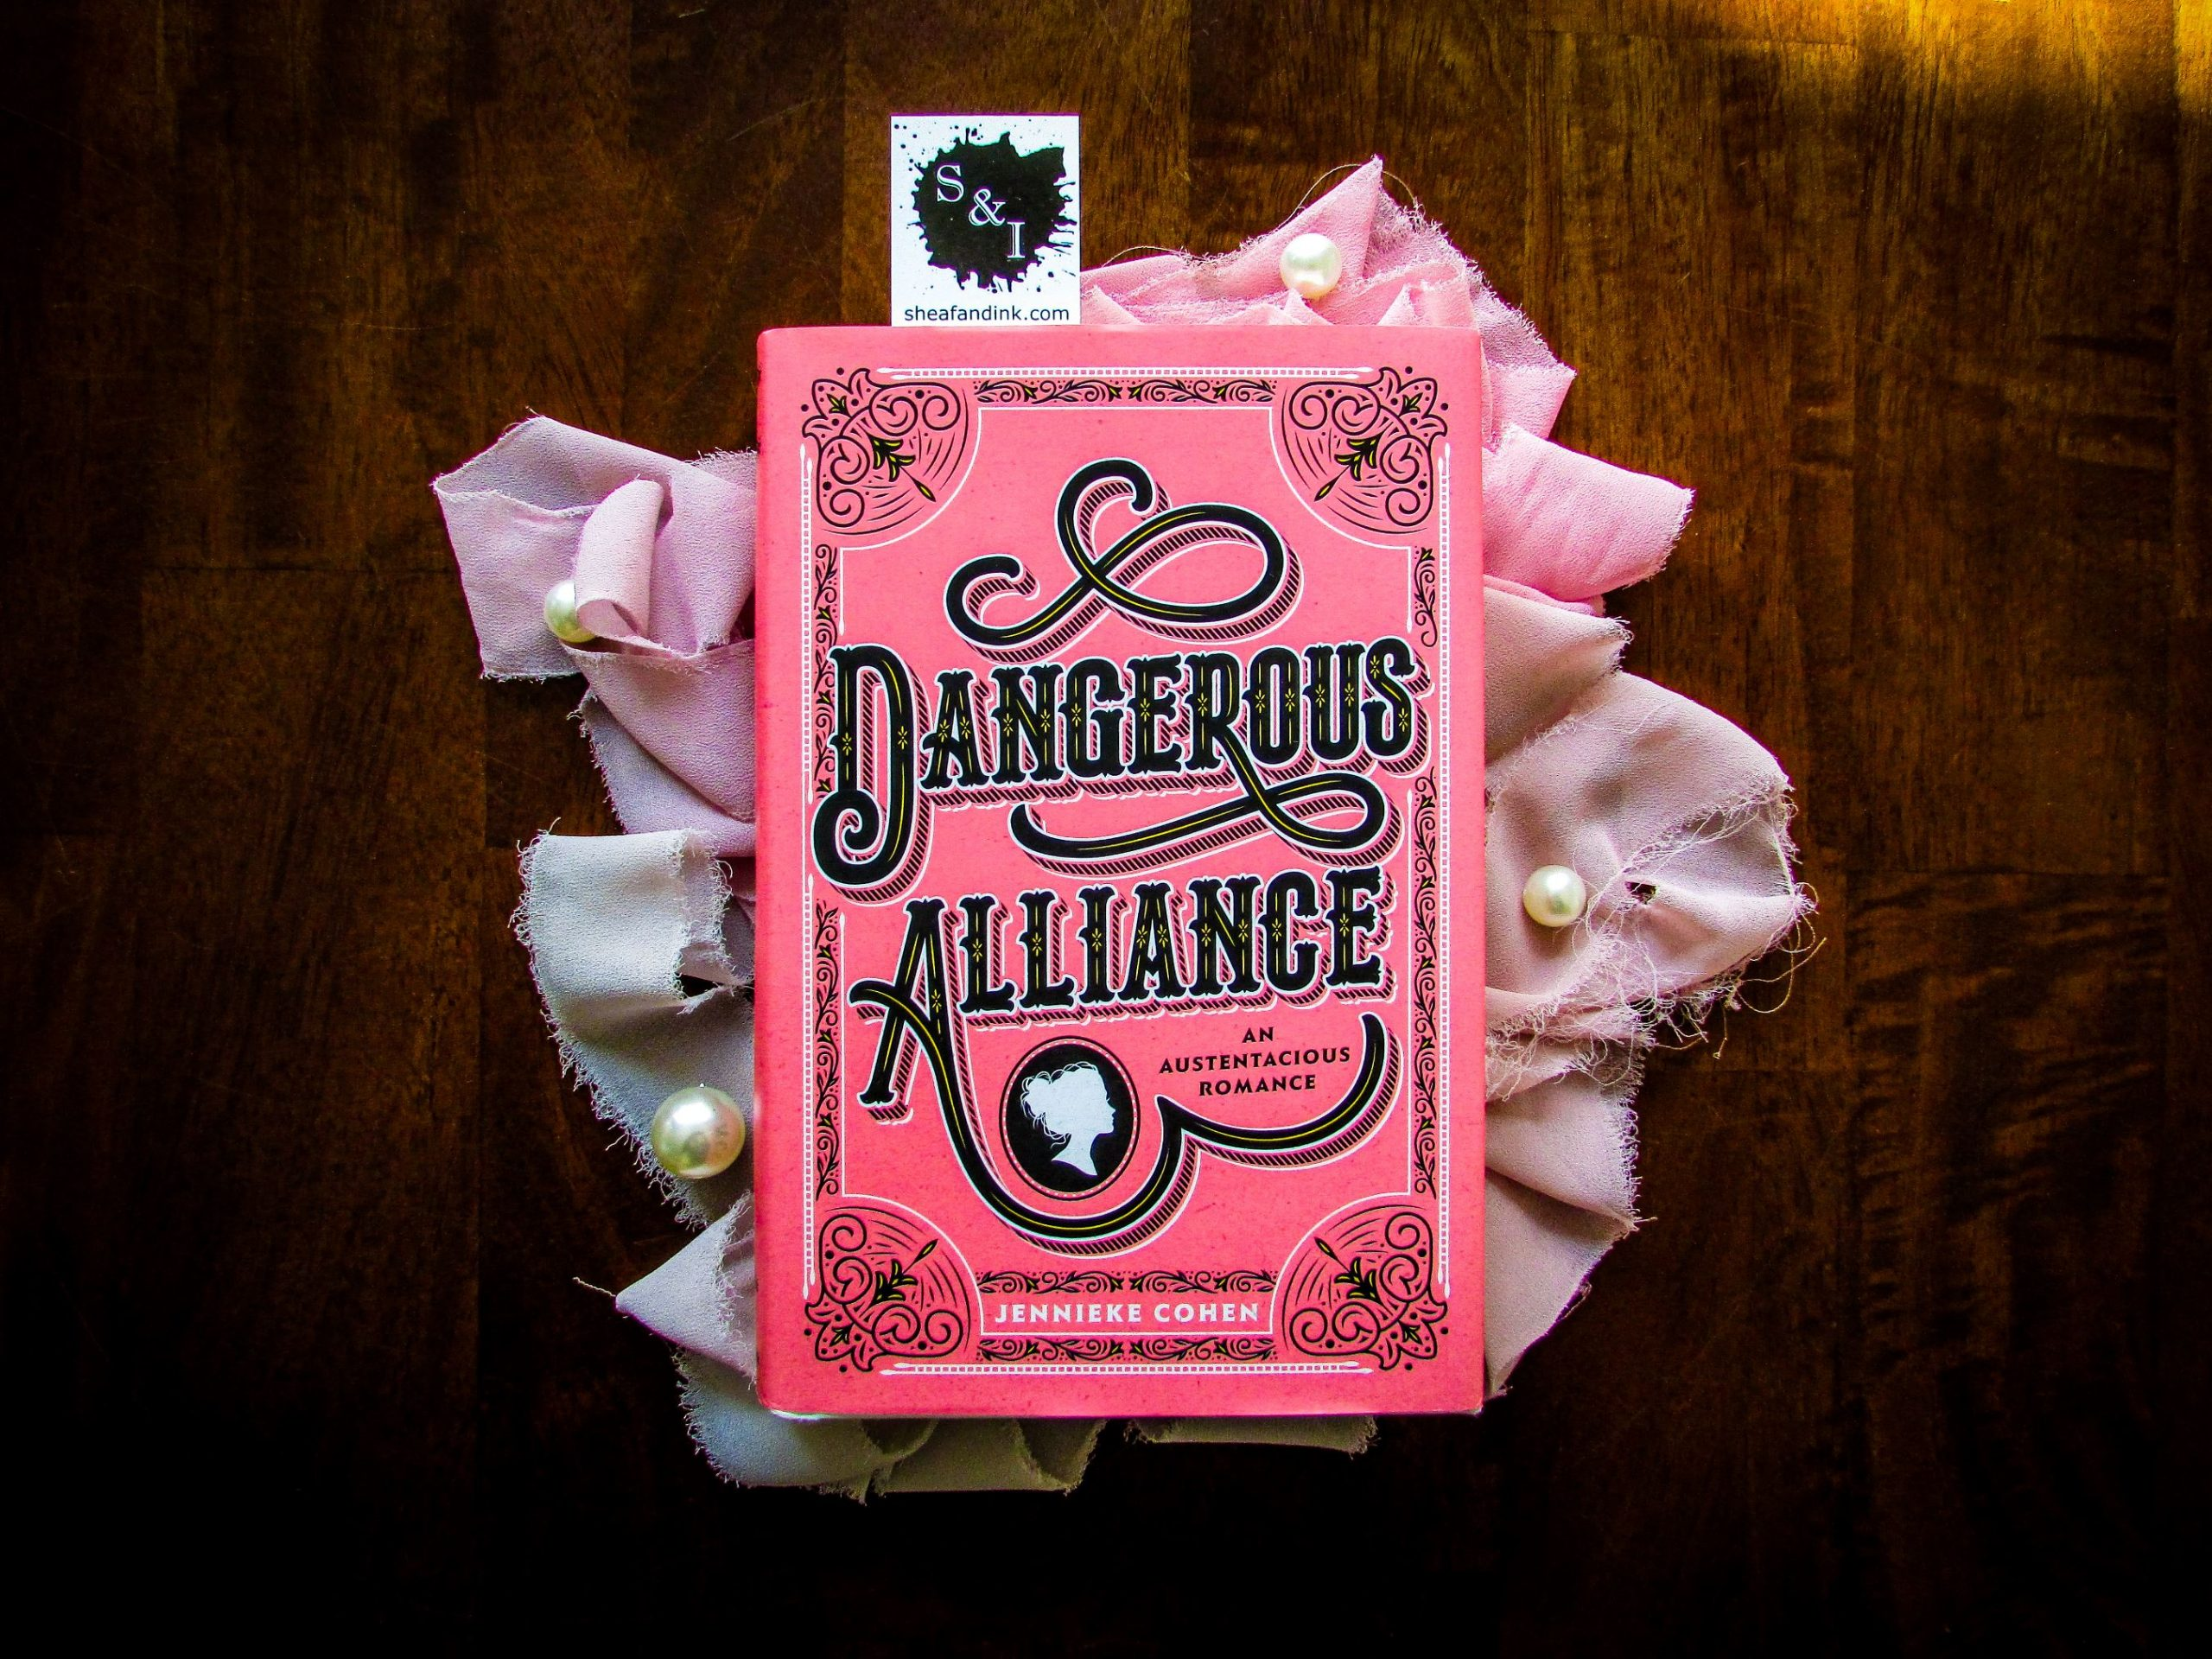 Dangerous Alliance, An Austentacious Romance by Jennieke Cohen